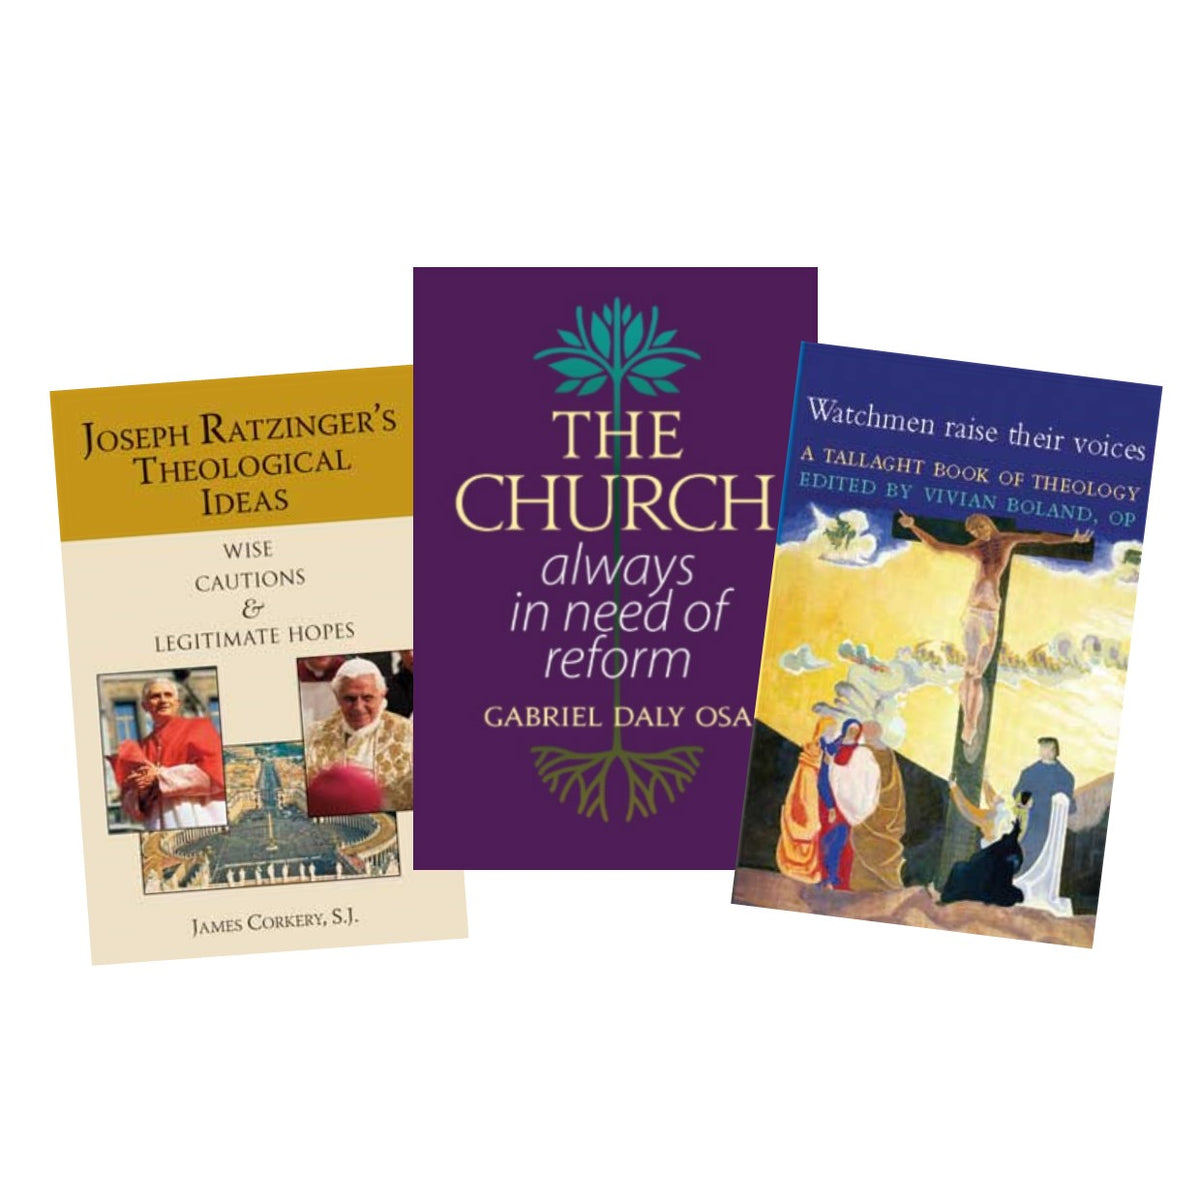 Books on theology including the most recent book The Church Always in Need of Refomr by Gabriel Daly OSA